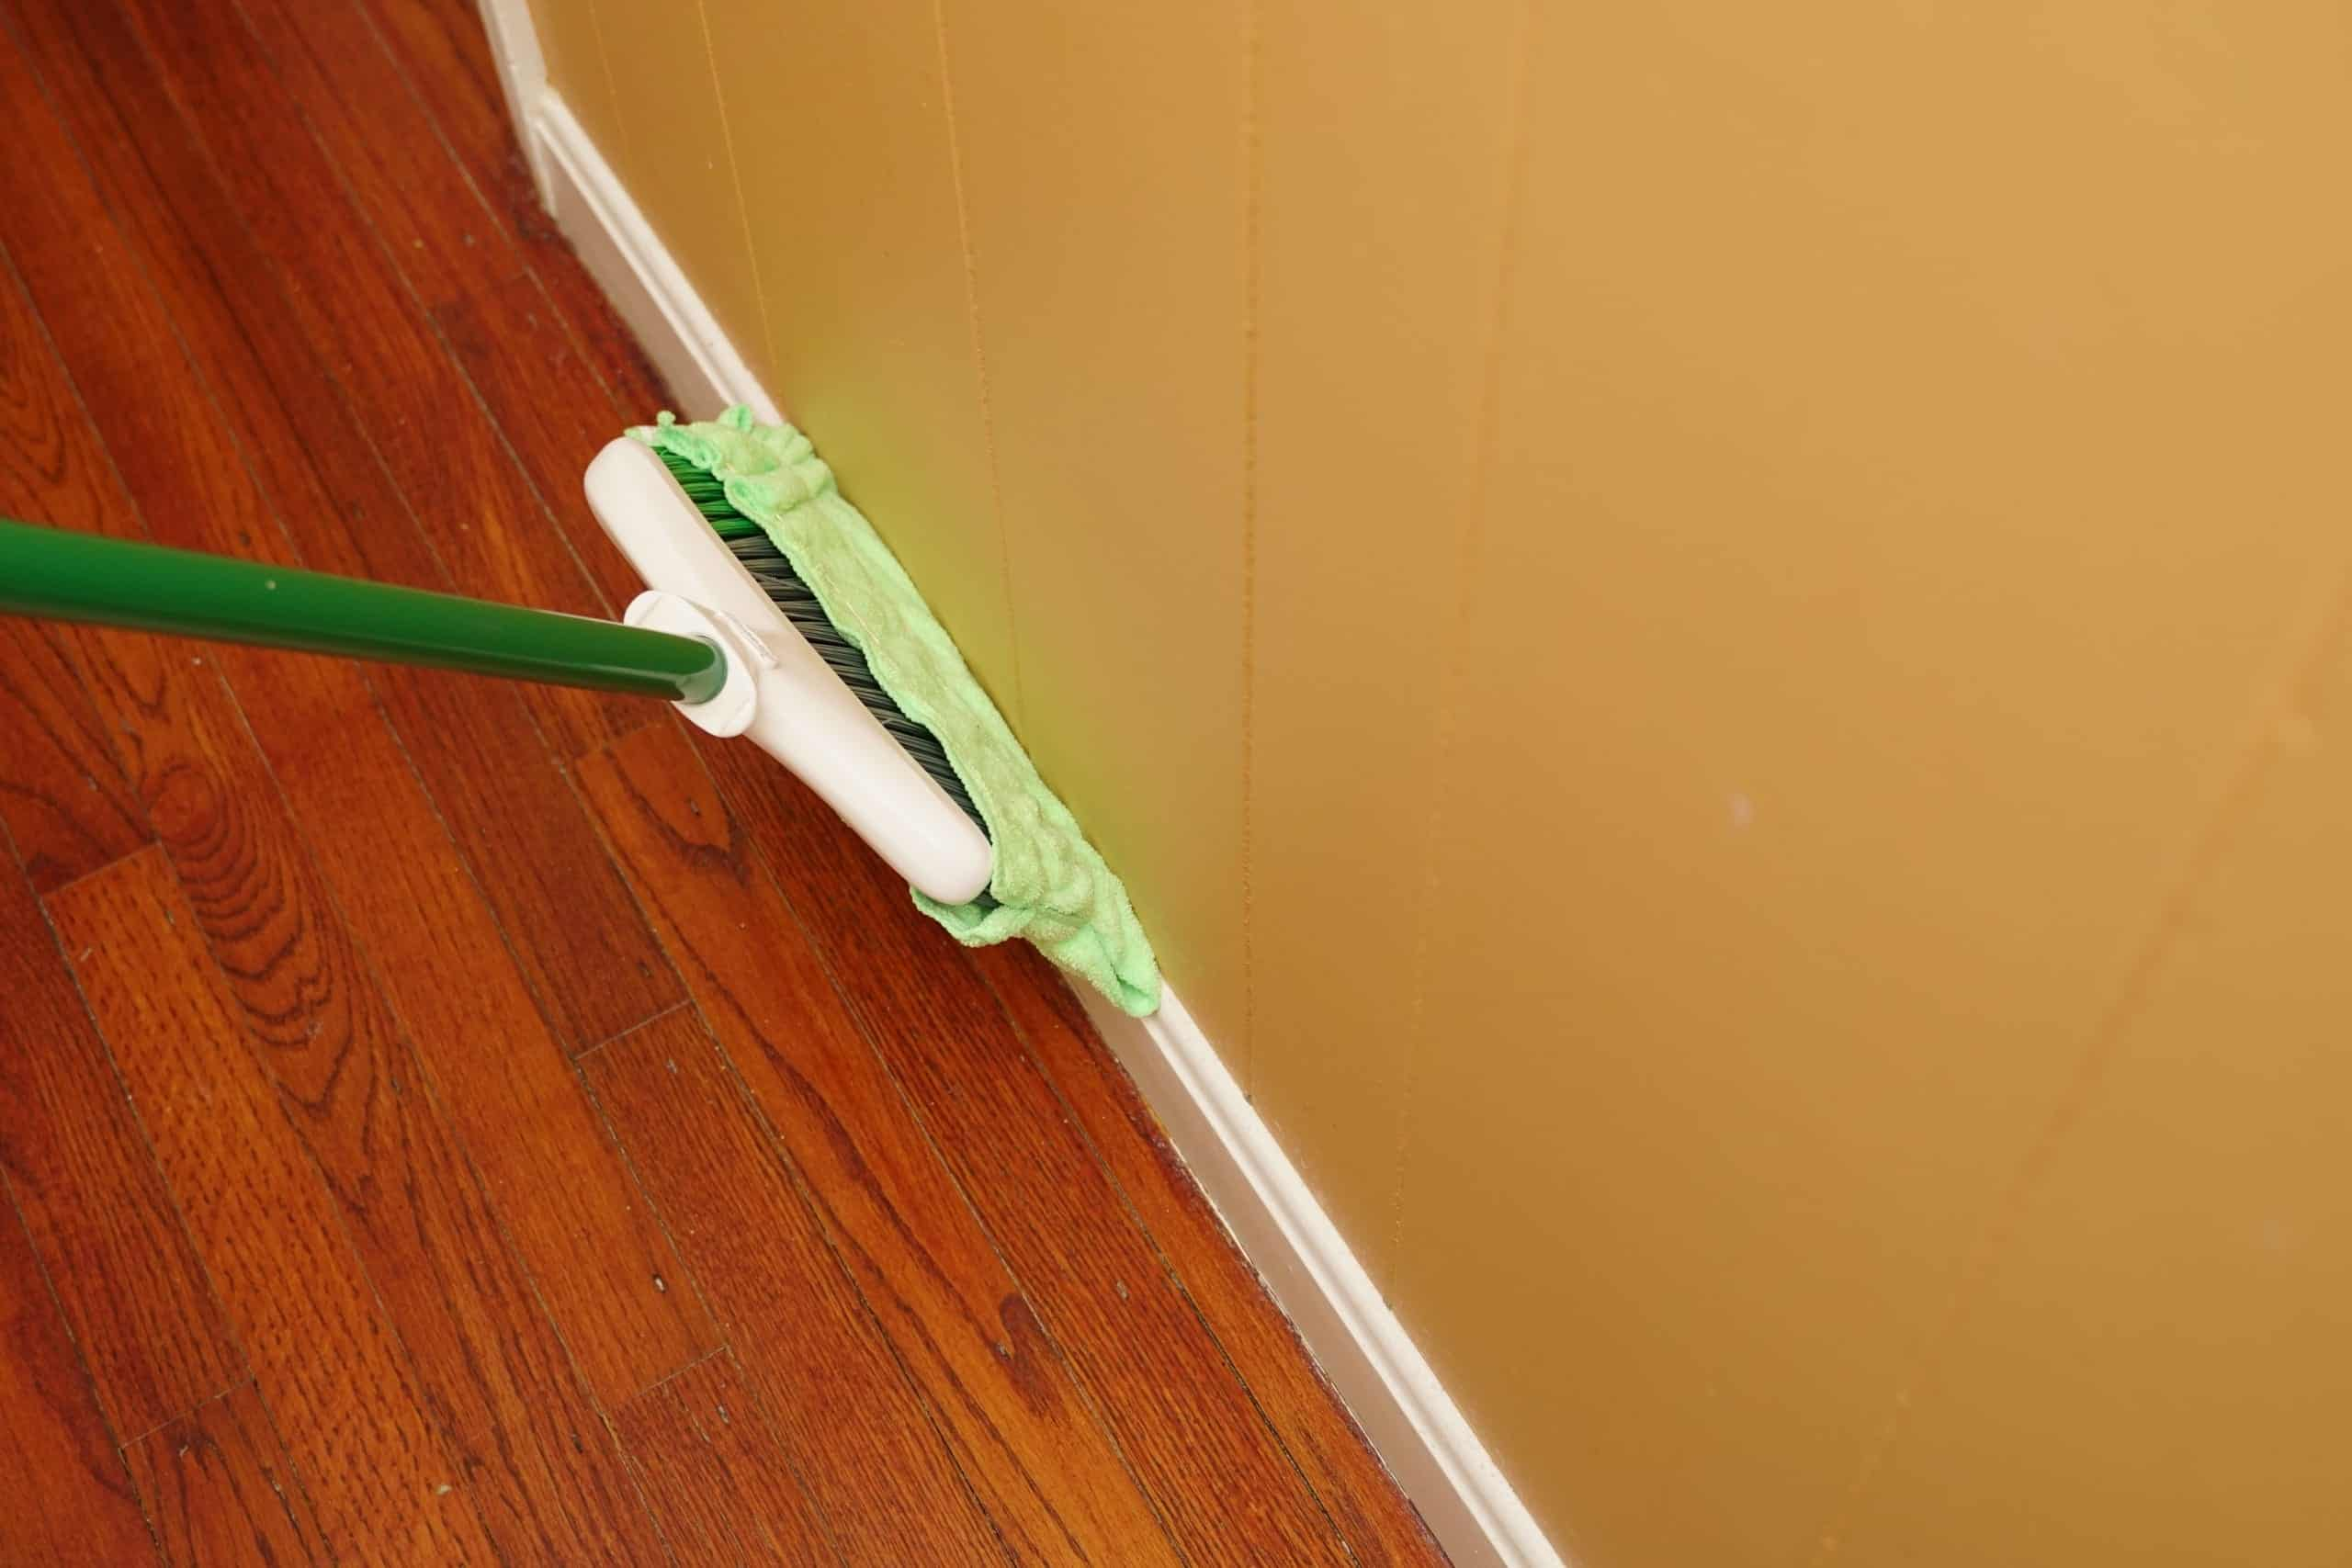 Cleaning baseboards with broom